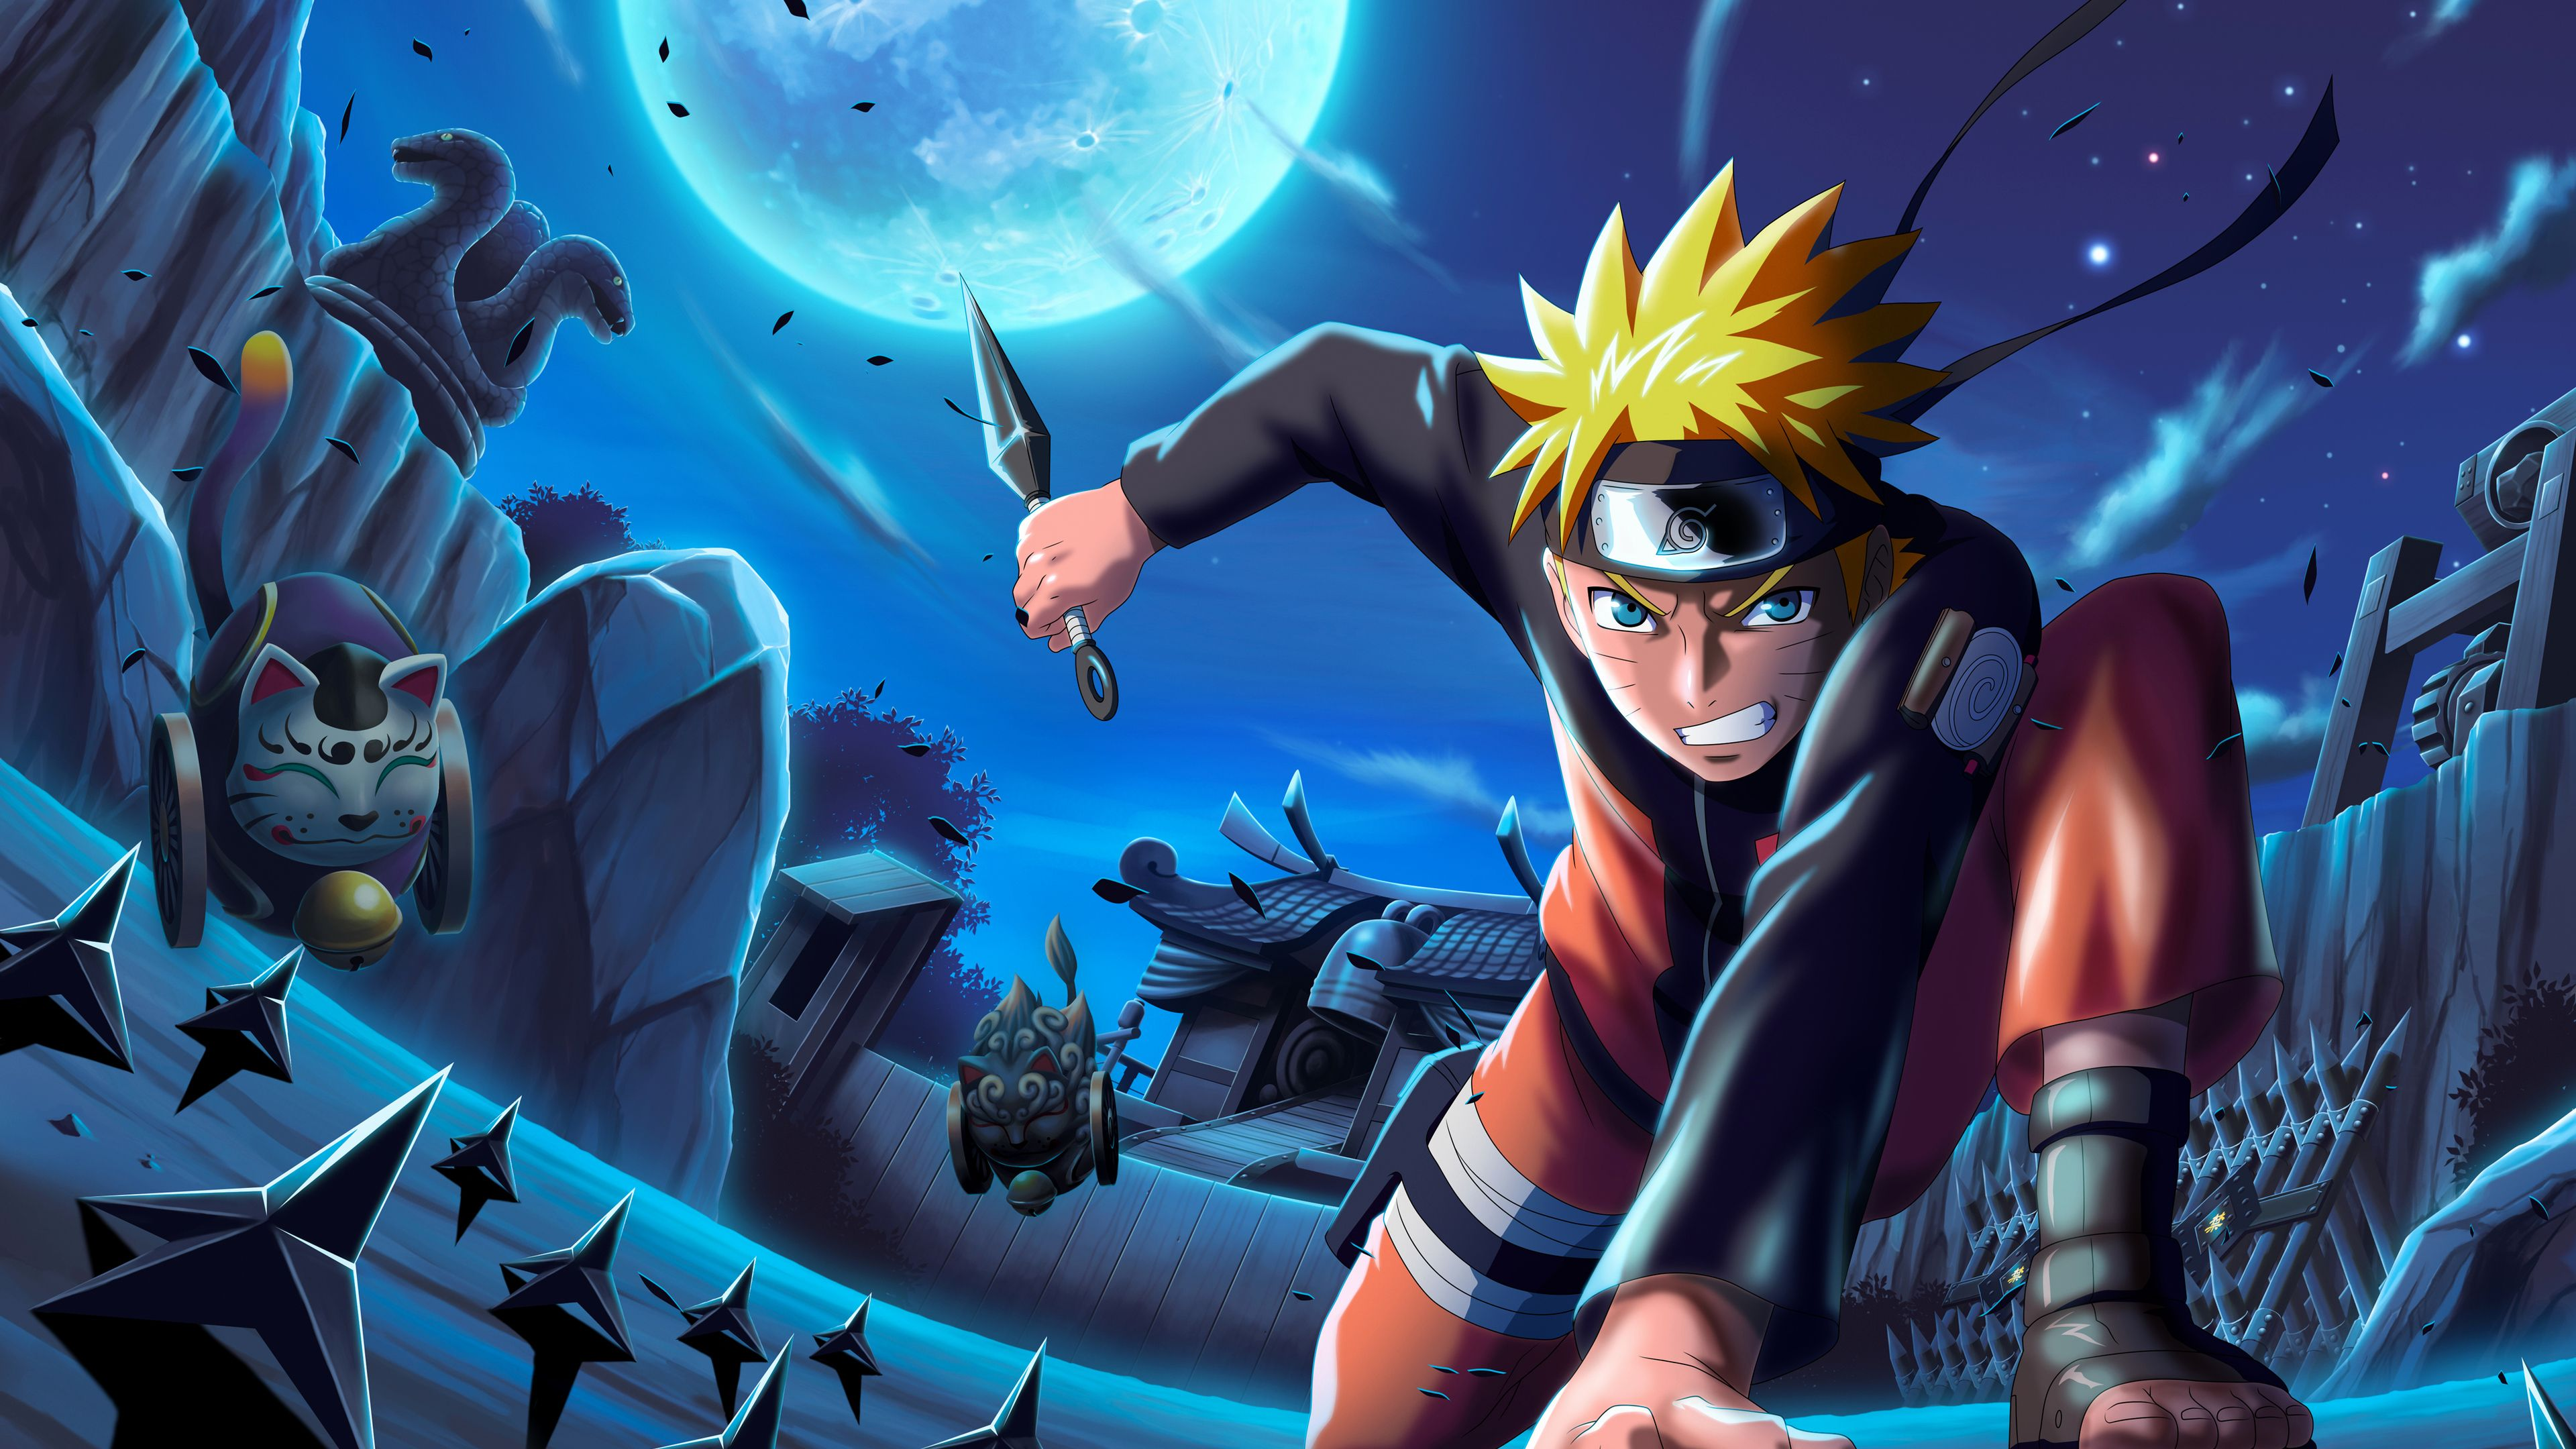 Naruto X Boruto Ninja Voltage Naruto X Boruto Ninja Voltage Wallpapers Naruto Wallpapers Hd W Naruto Wallpaper Wallpaper Naruto 3d Wallpaper Naruto Shippuden